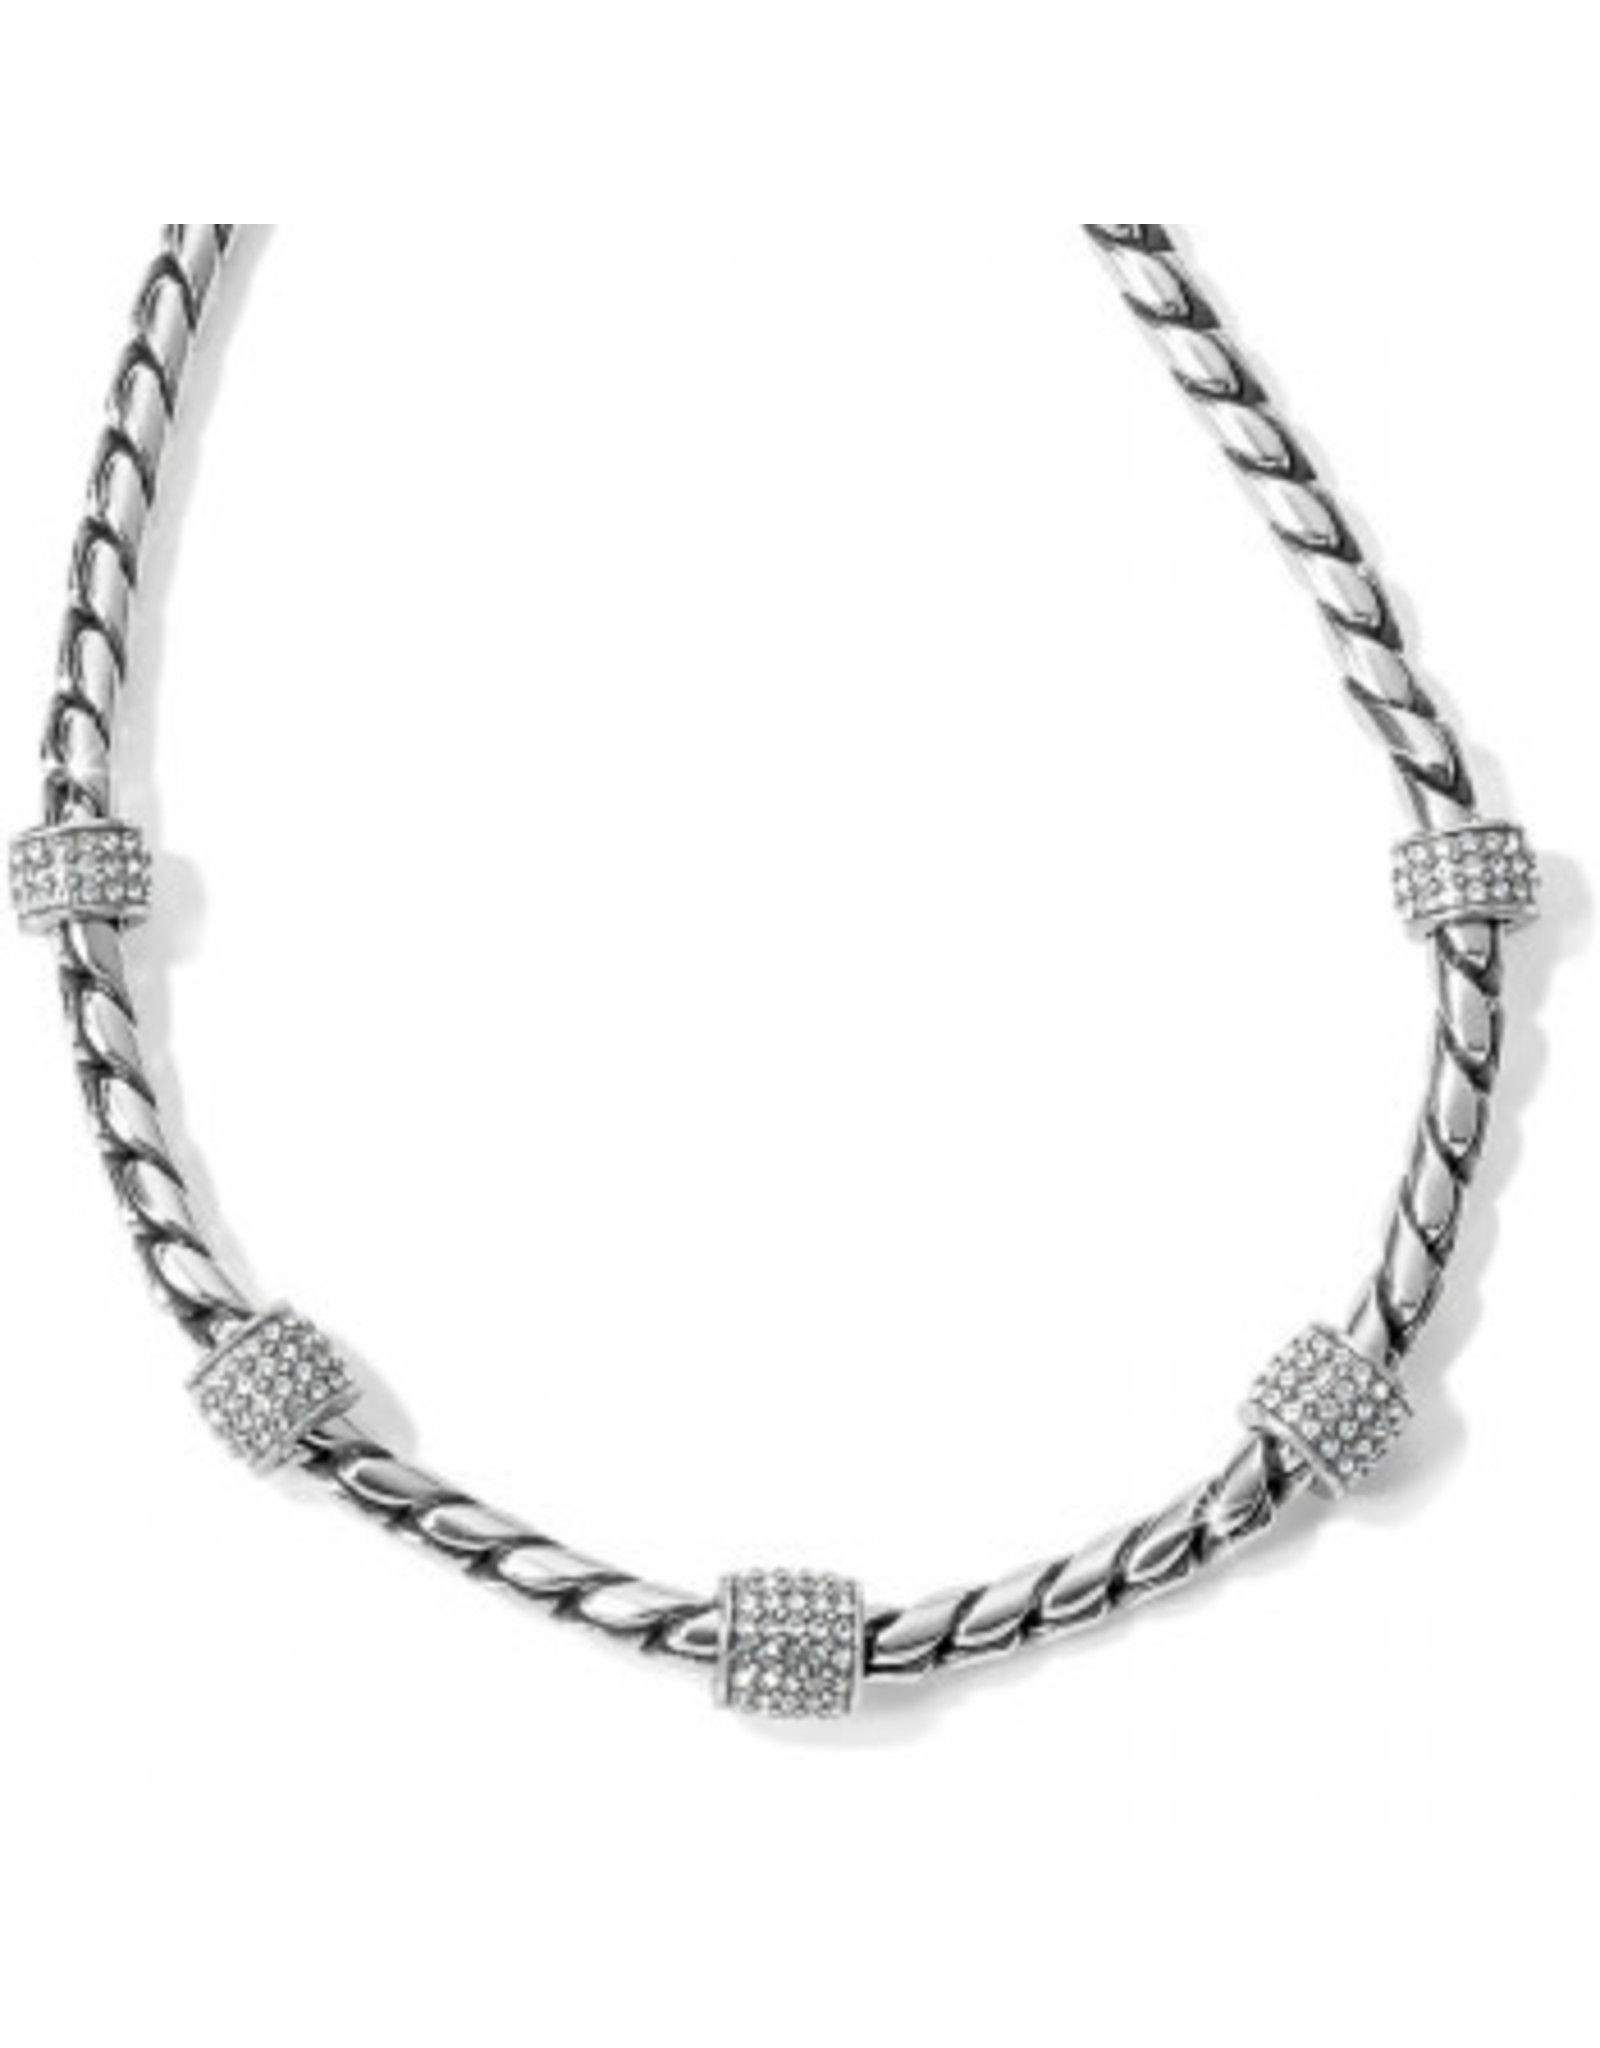 Brighton Meridian Necklace